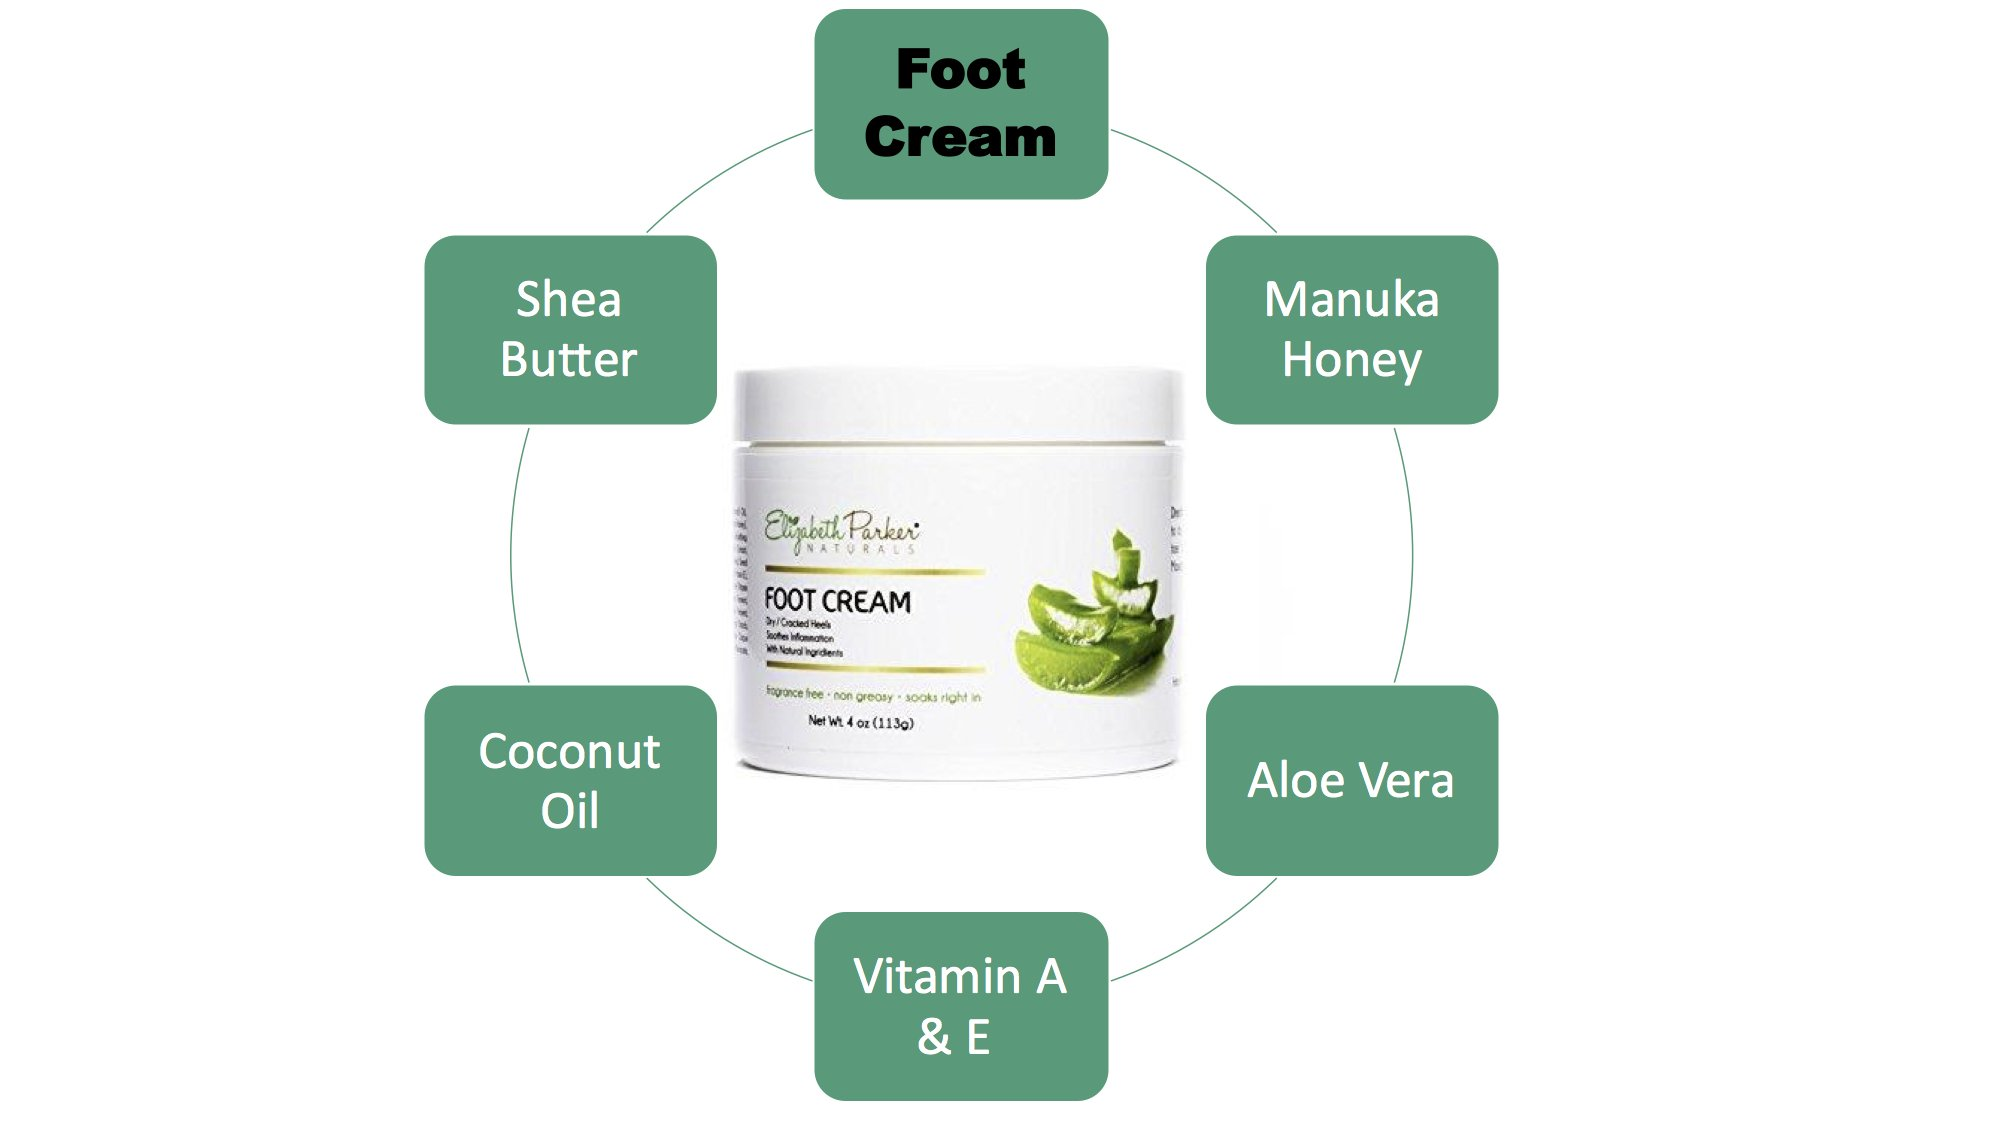 Foot Cream for Dry Cracked Heels and Feet - Anti Fungal for Athletes Foot - Best Foot Callus Remover for Men and Women - Fragrance Free and Non Greasy 2oz by Elizabeth Parker Naturals (Image #4)